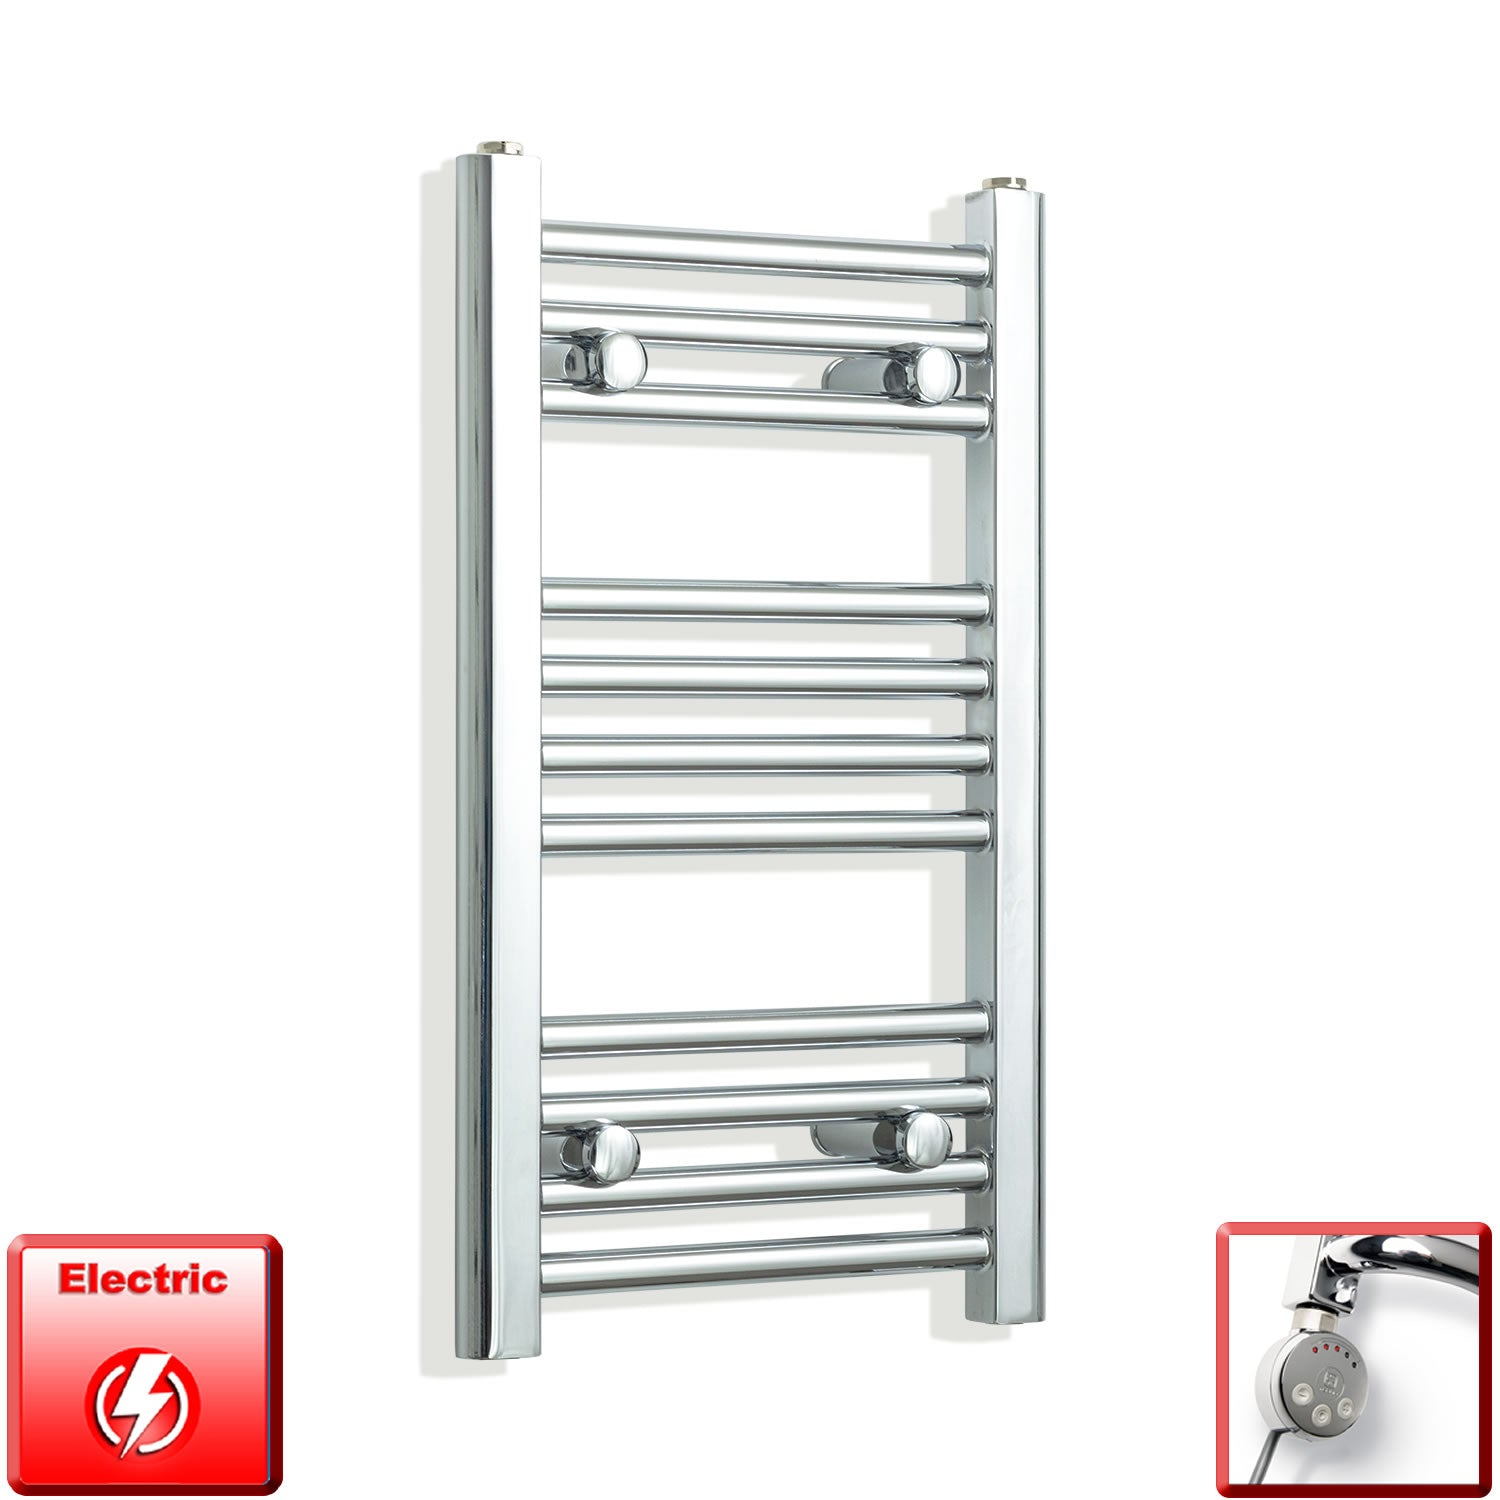 350mm Wide 600mm High Pre-Filled Chrome Electric Towel Rail Radiator With Thermostatic MEG Element